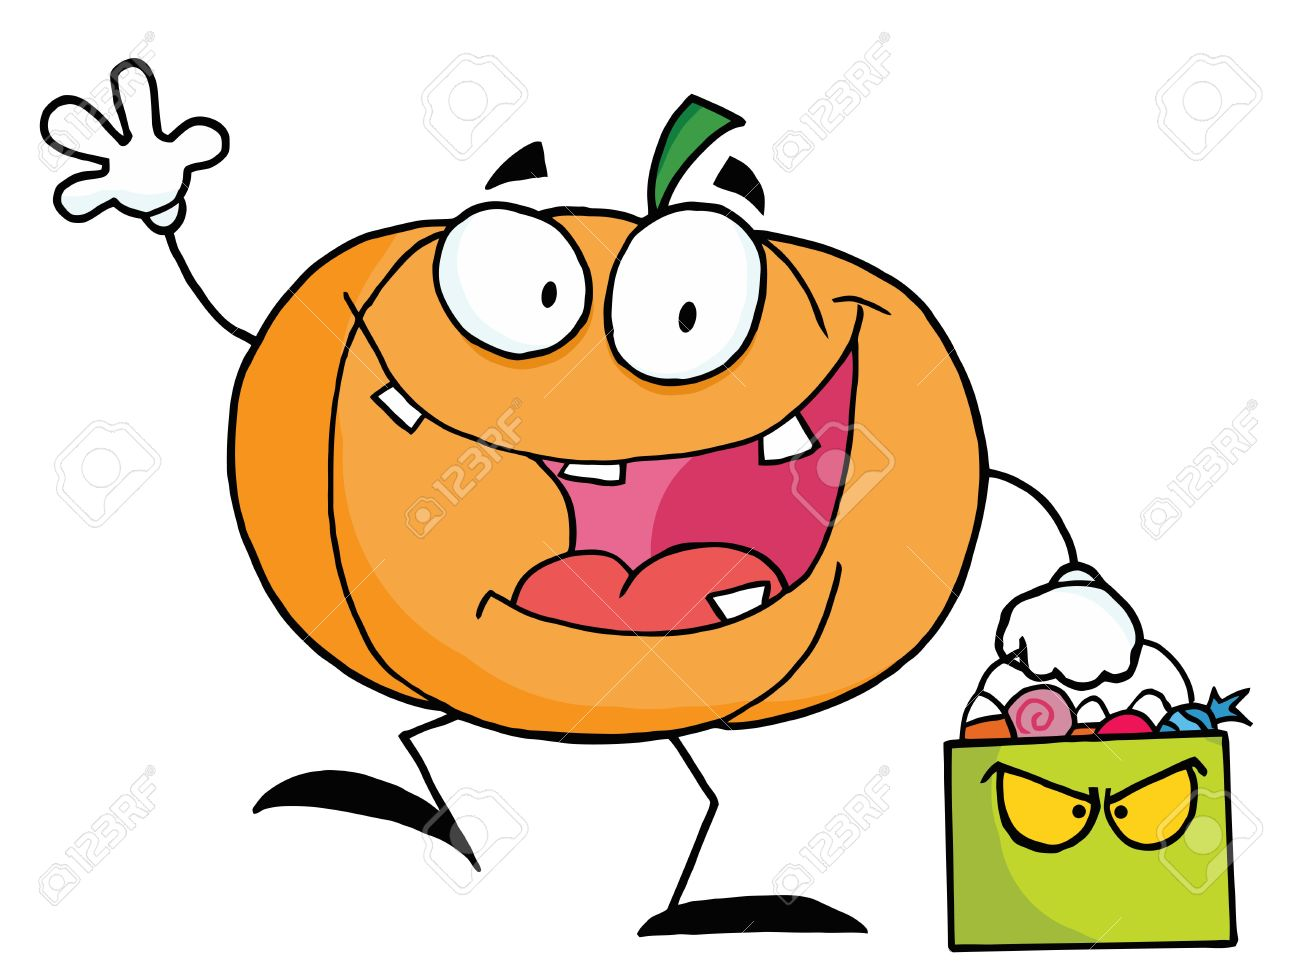 Character pumpkin clipart graphic download Pumpkin Character Waving And Carrying A Green Trick Or Treat ... graphic download